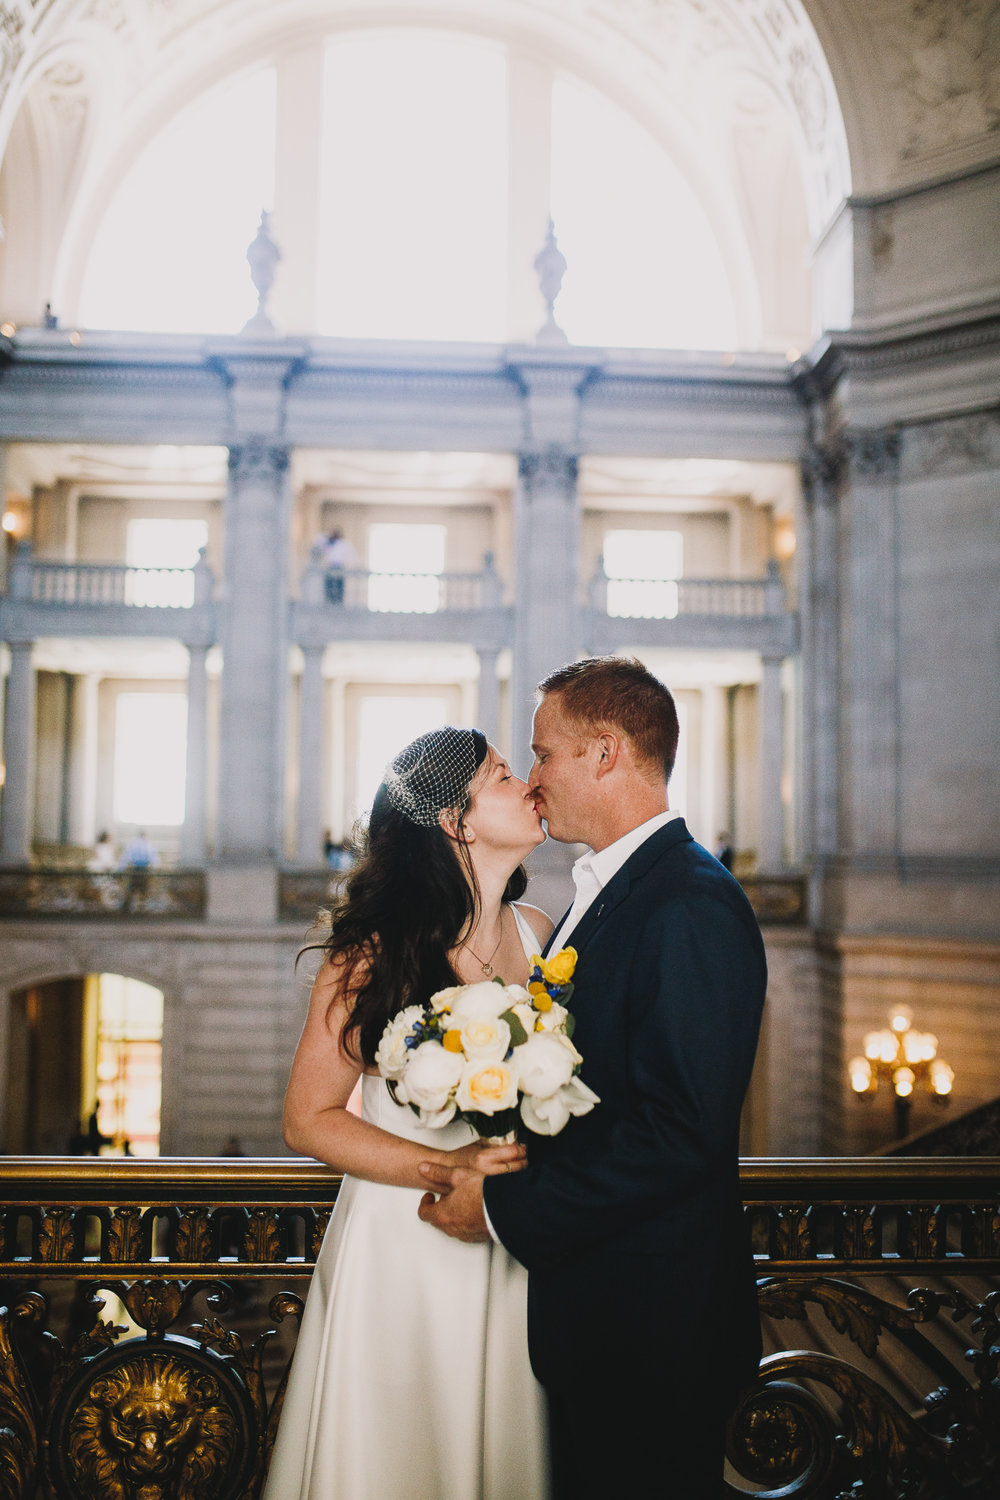 Archer Inspired Photography SF City Hall Elopement Wedding Lifestyle Documentary Affordable Photographer-202.jpg